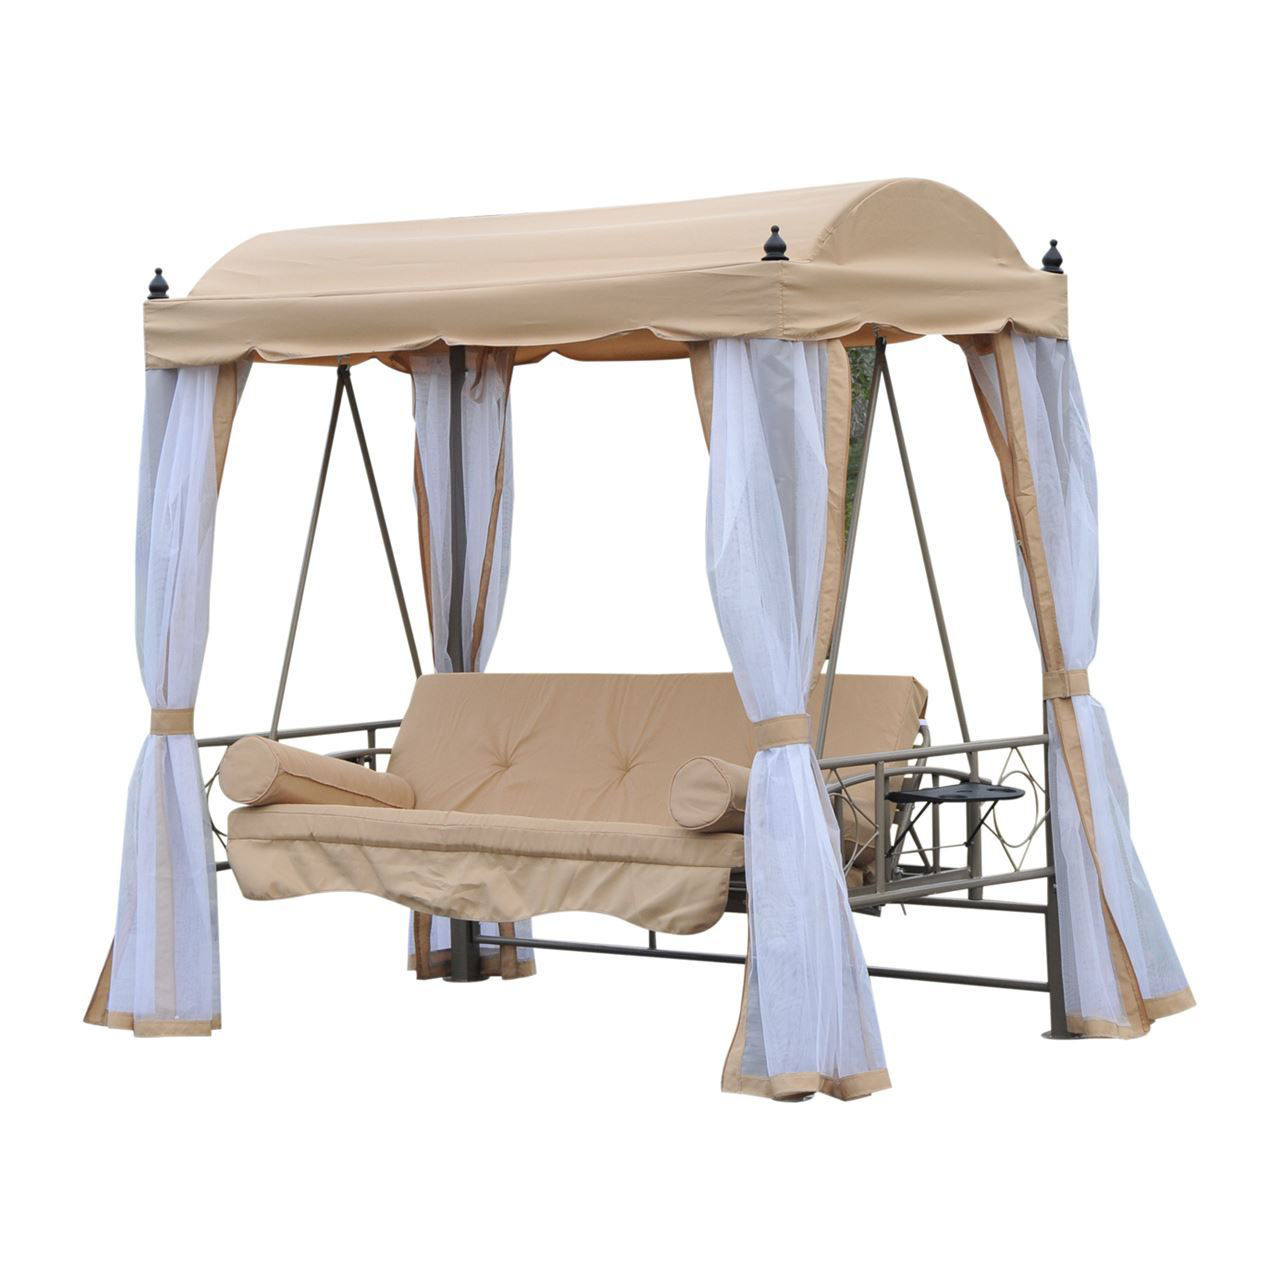 Picture of Outdoor Convertible Covered Patio Swing Bed with Mesh Side Walls - Beige